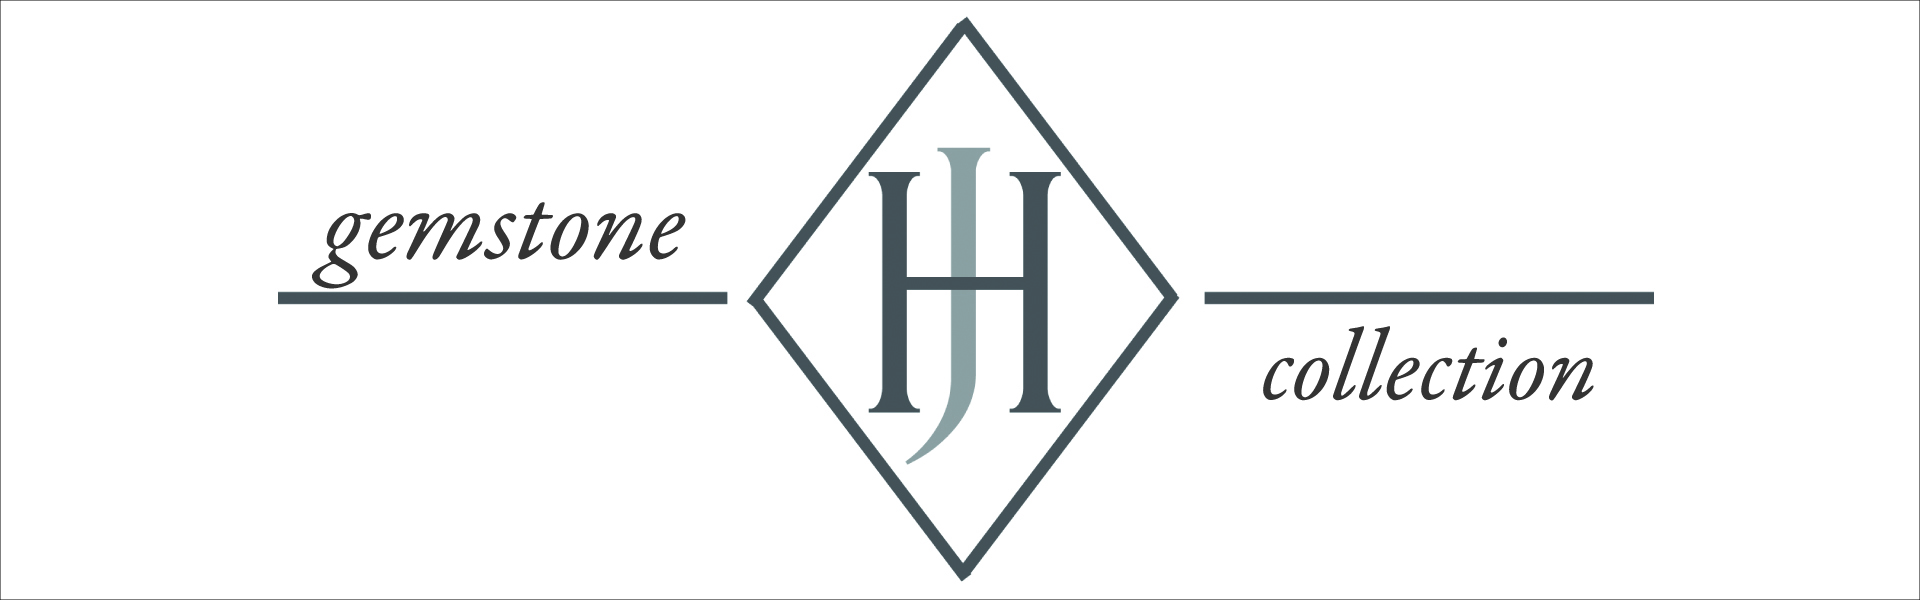 Herbin Jewellers HJ Gemstone Collection